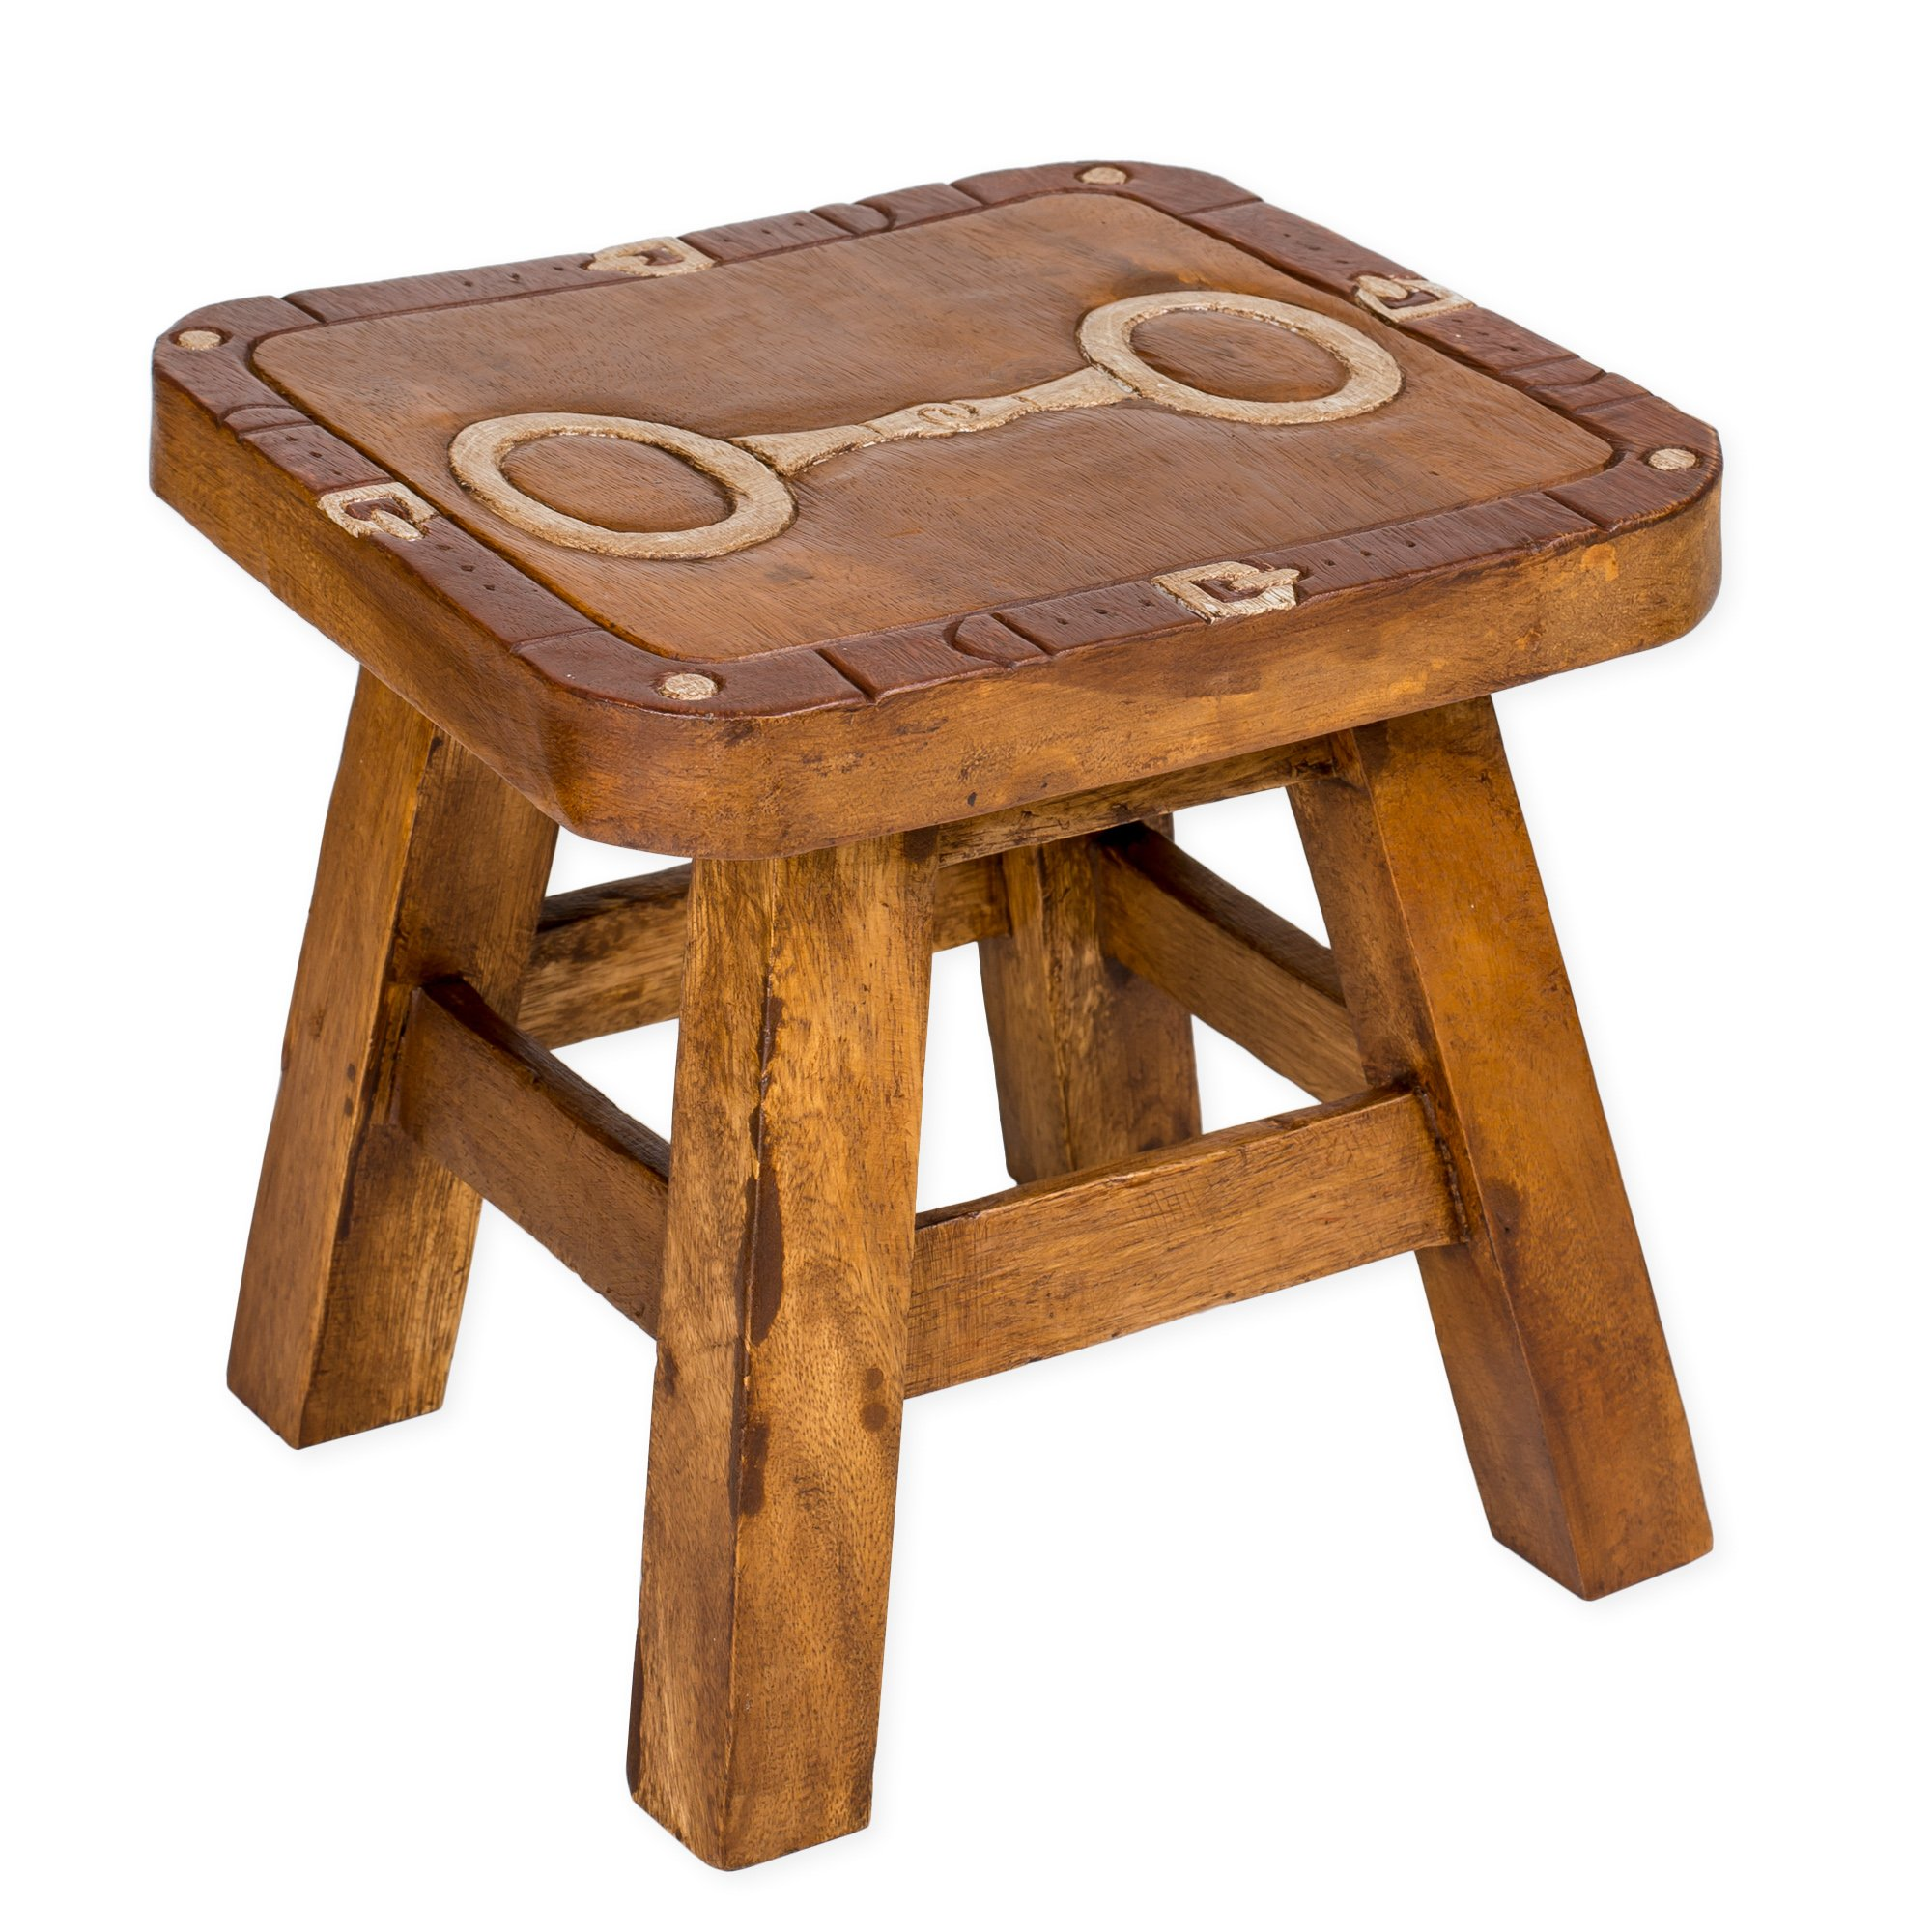 Horse Snaffle Bit Hand Carved Acacia Hardwood Decorative Short Stool